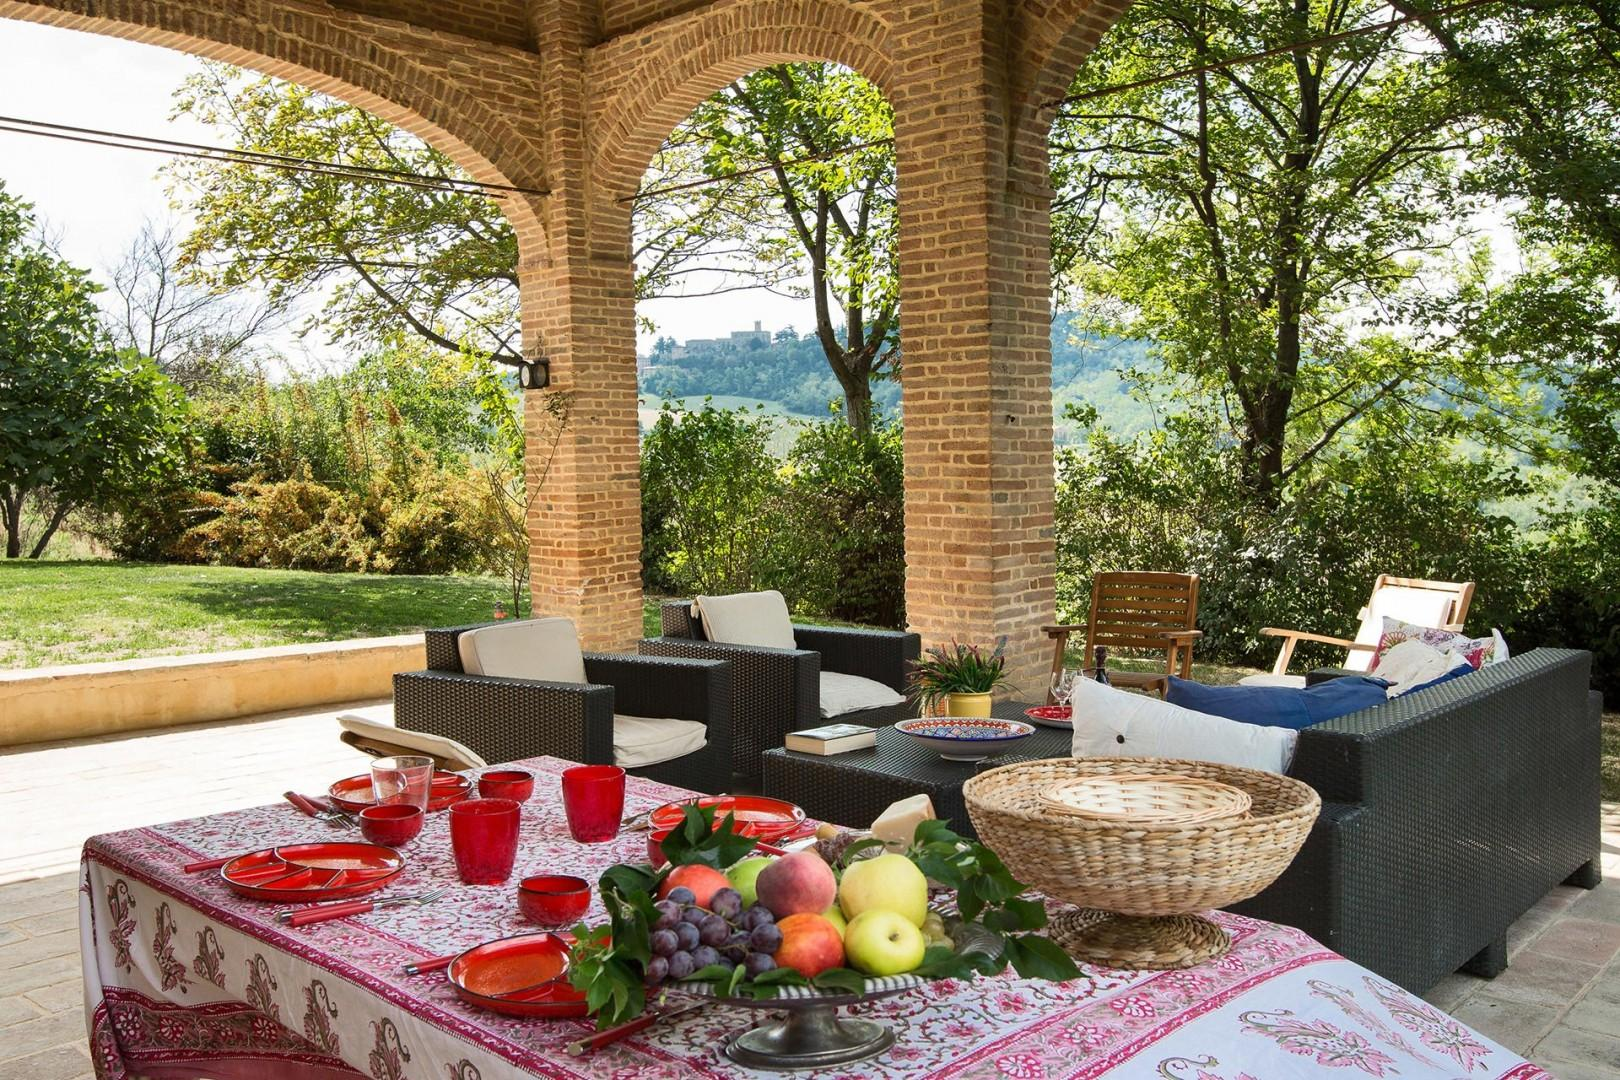 The delightful covered terrace offers a view all the way to the nearby castle.